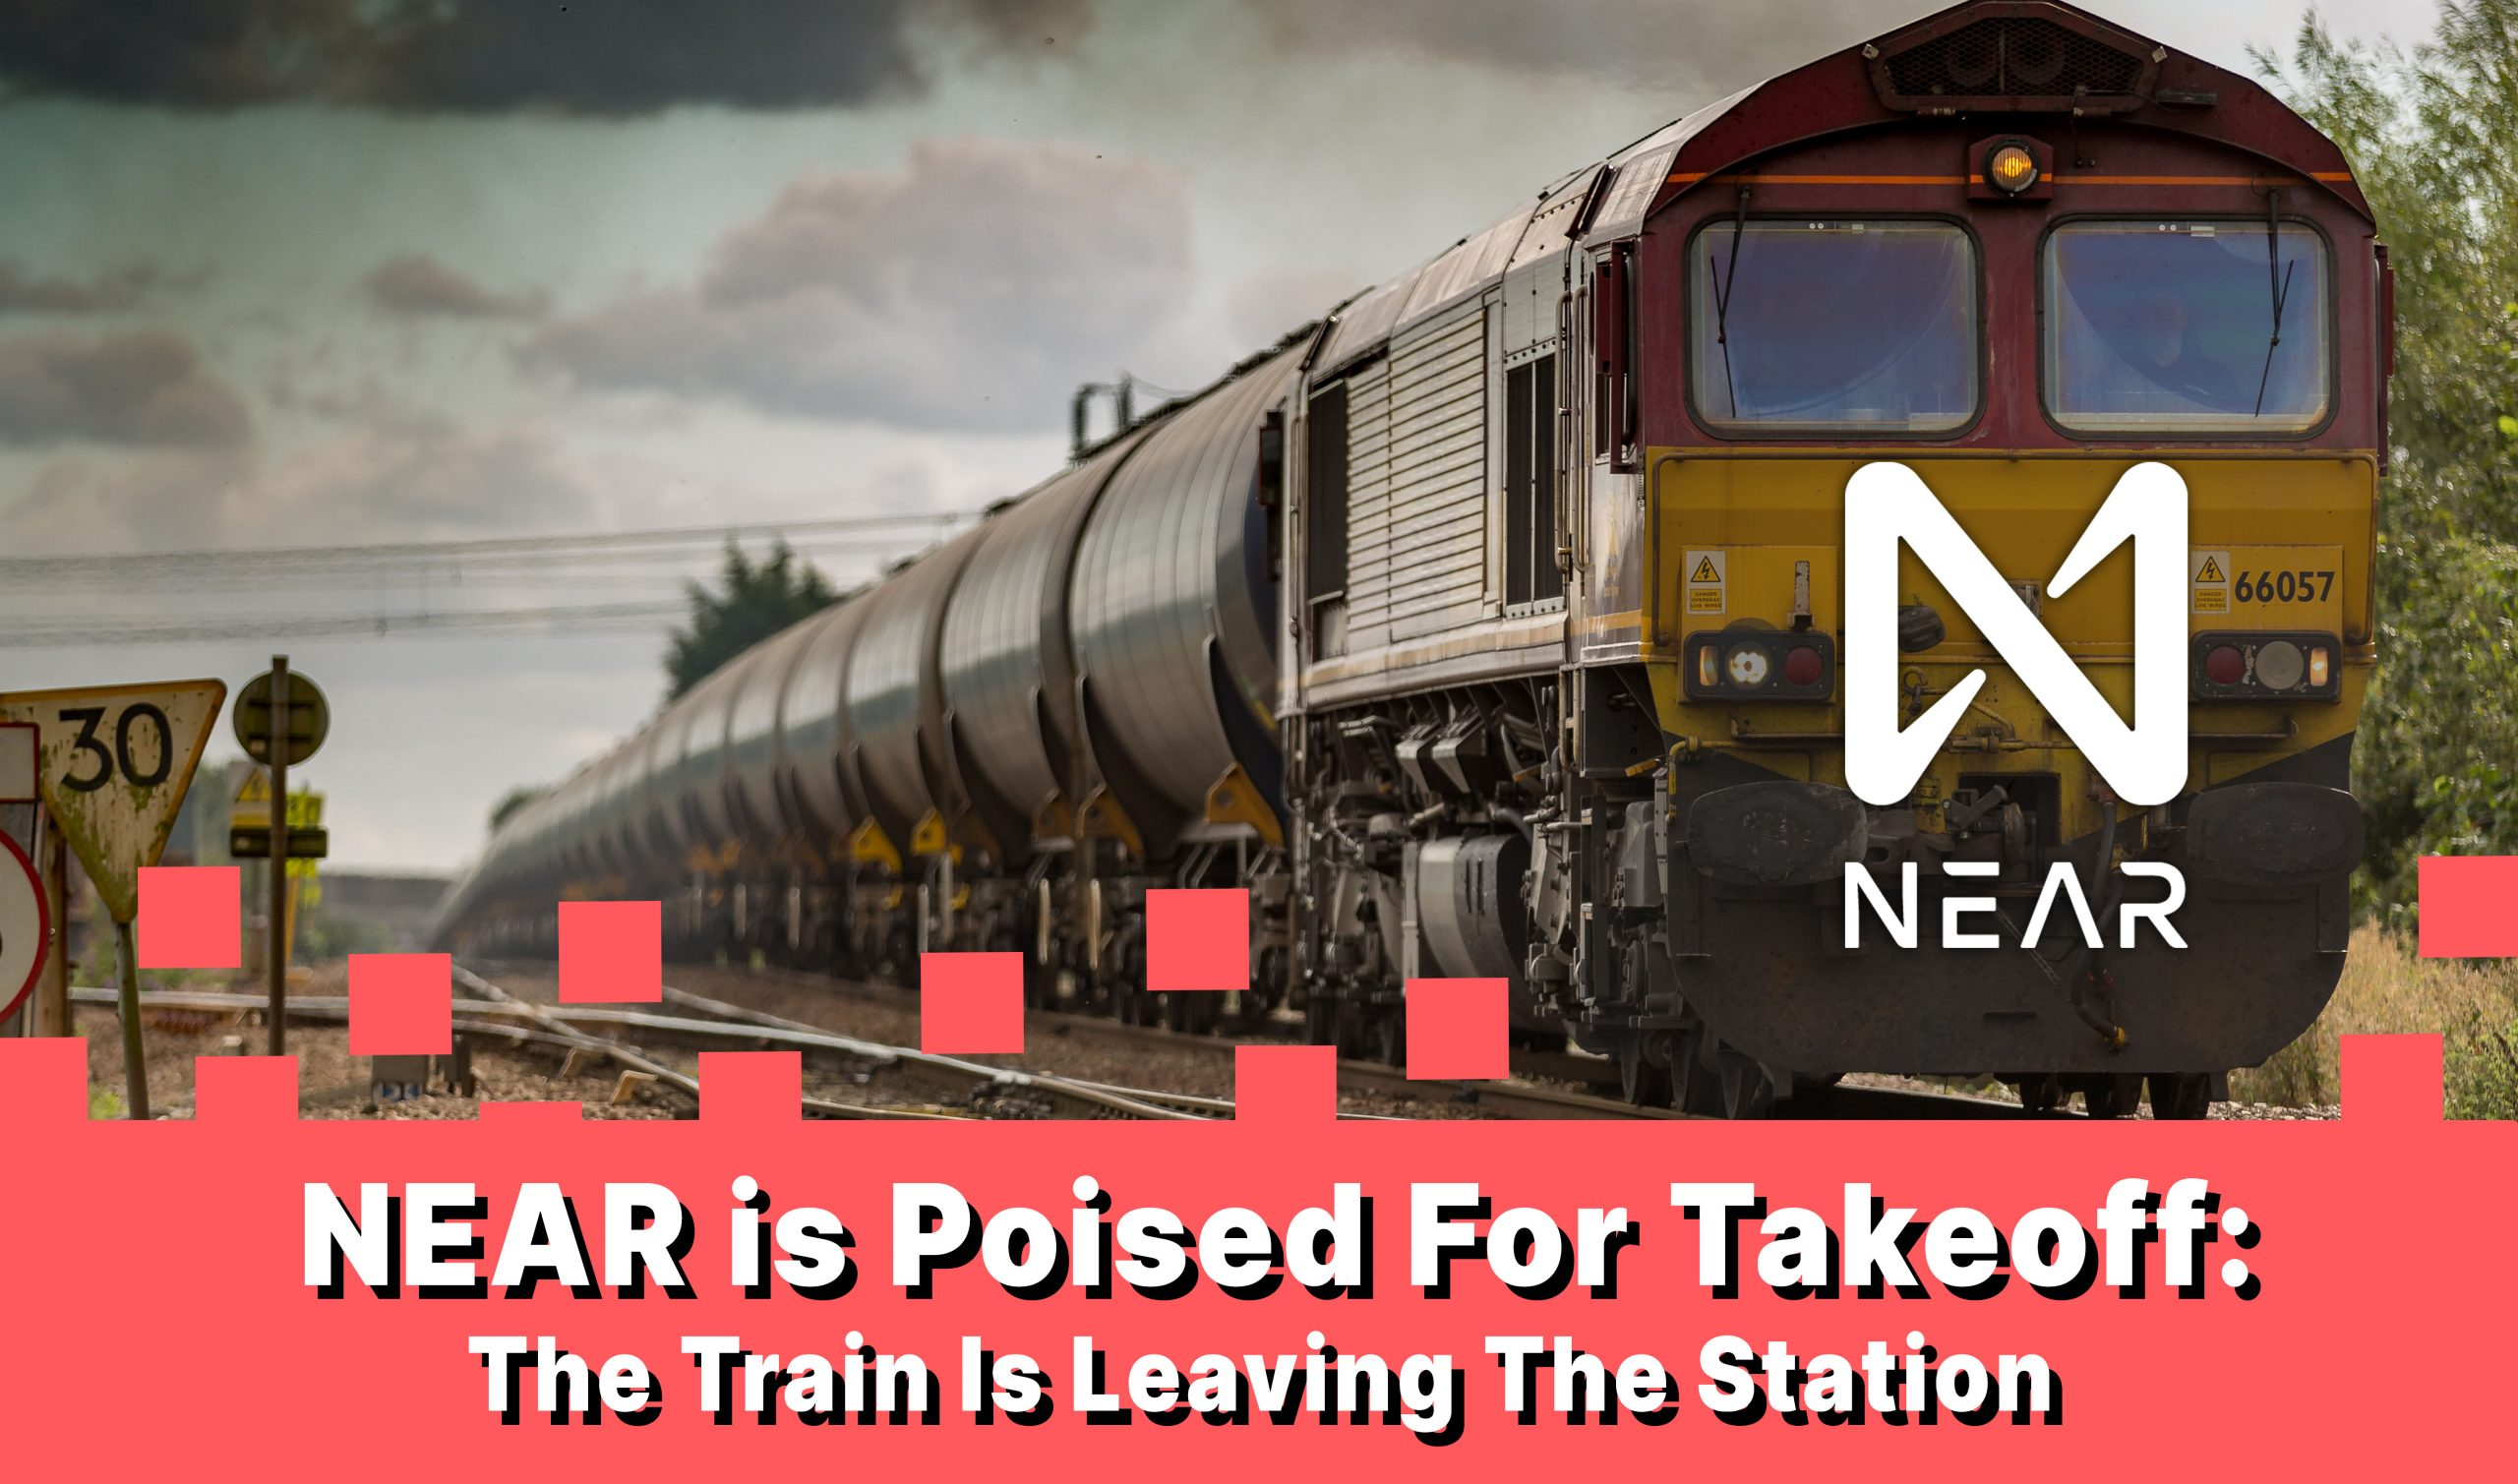 NEAR is Poised For Takeoff: The Train Is Leaving The Station